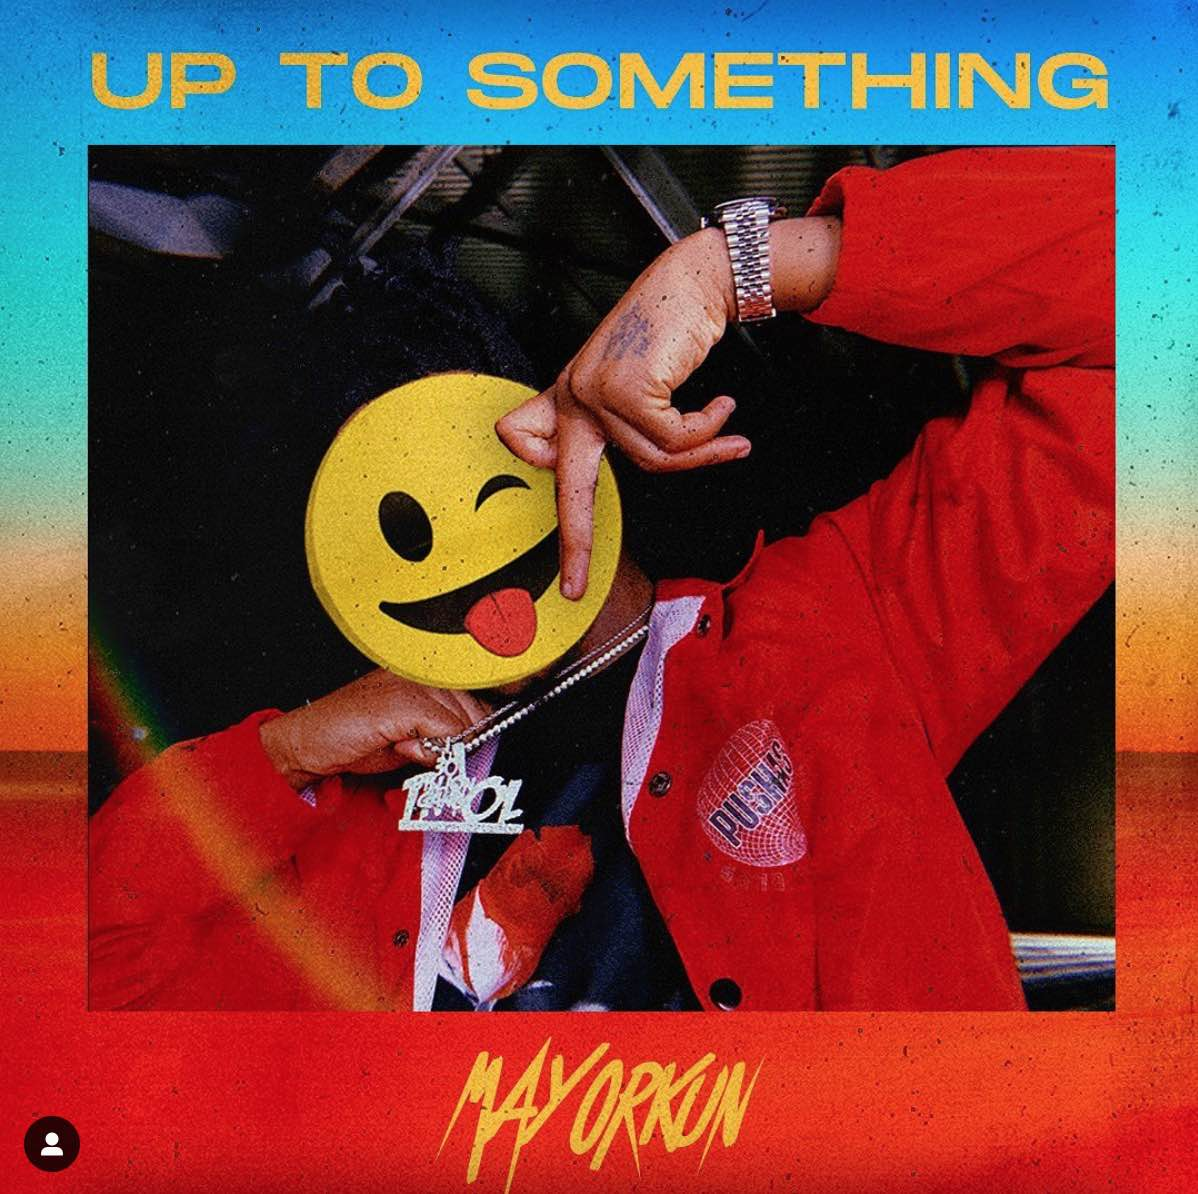 Mayorkun Turns Faze's Tune to a massive hit in